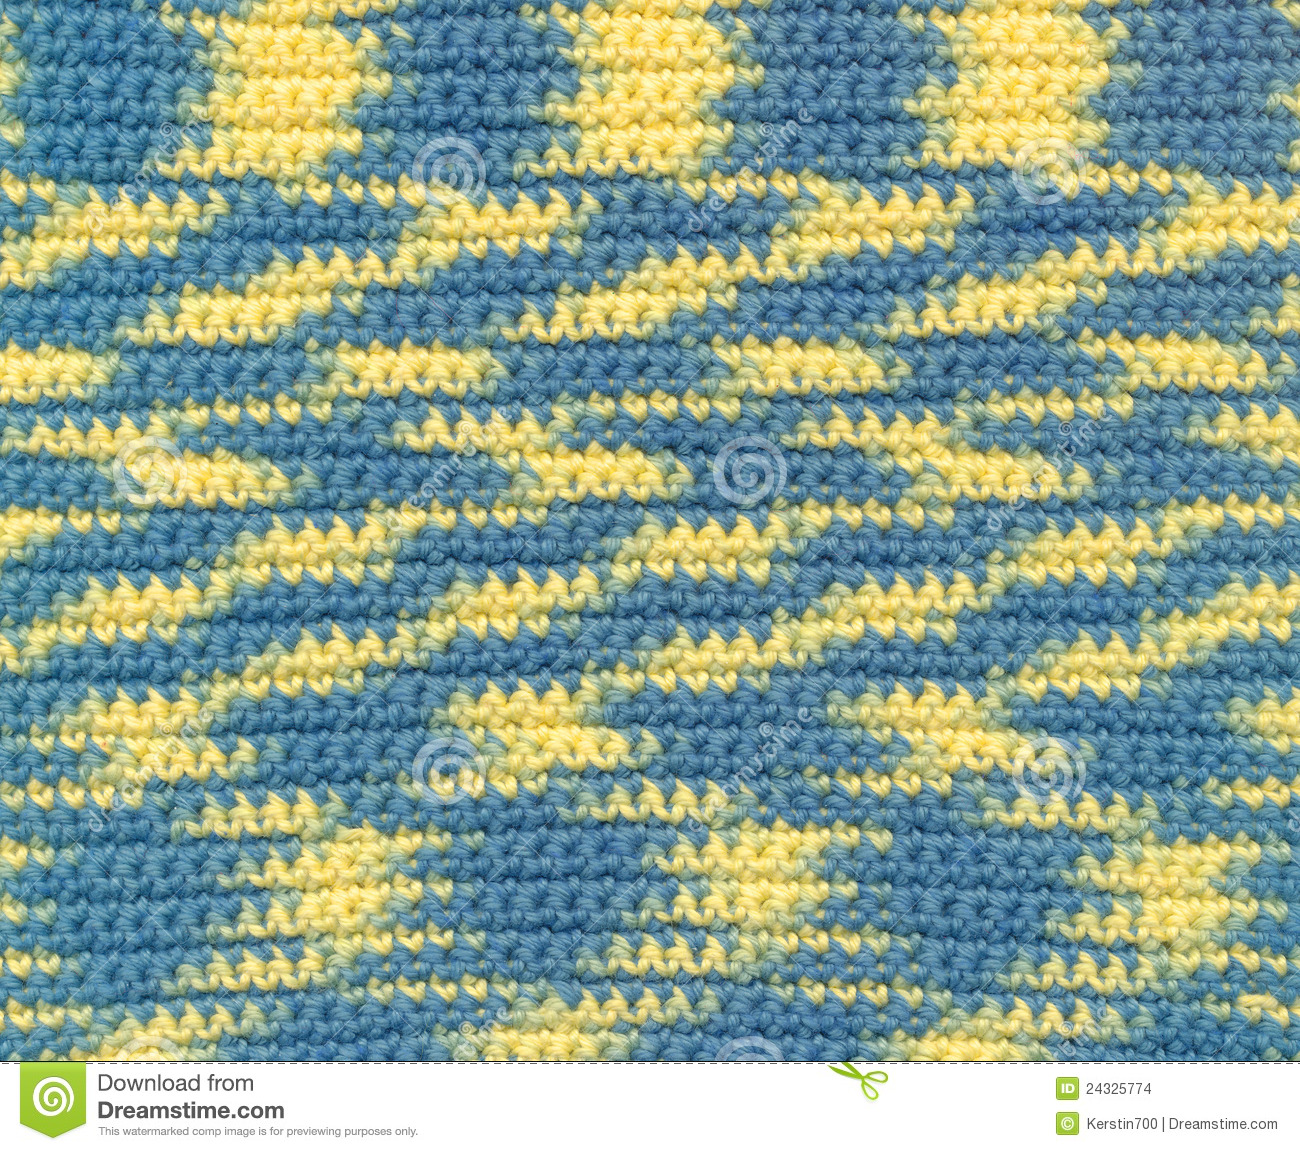 Background Crochet Variegated Yarn Stock Photo Image Of